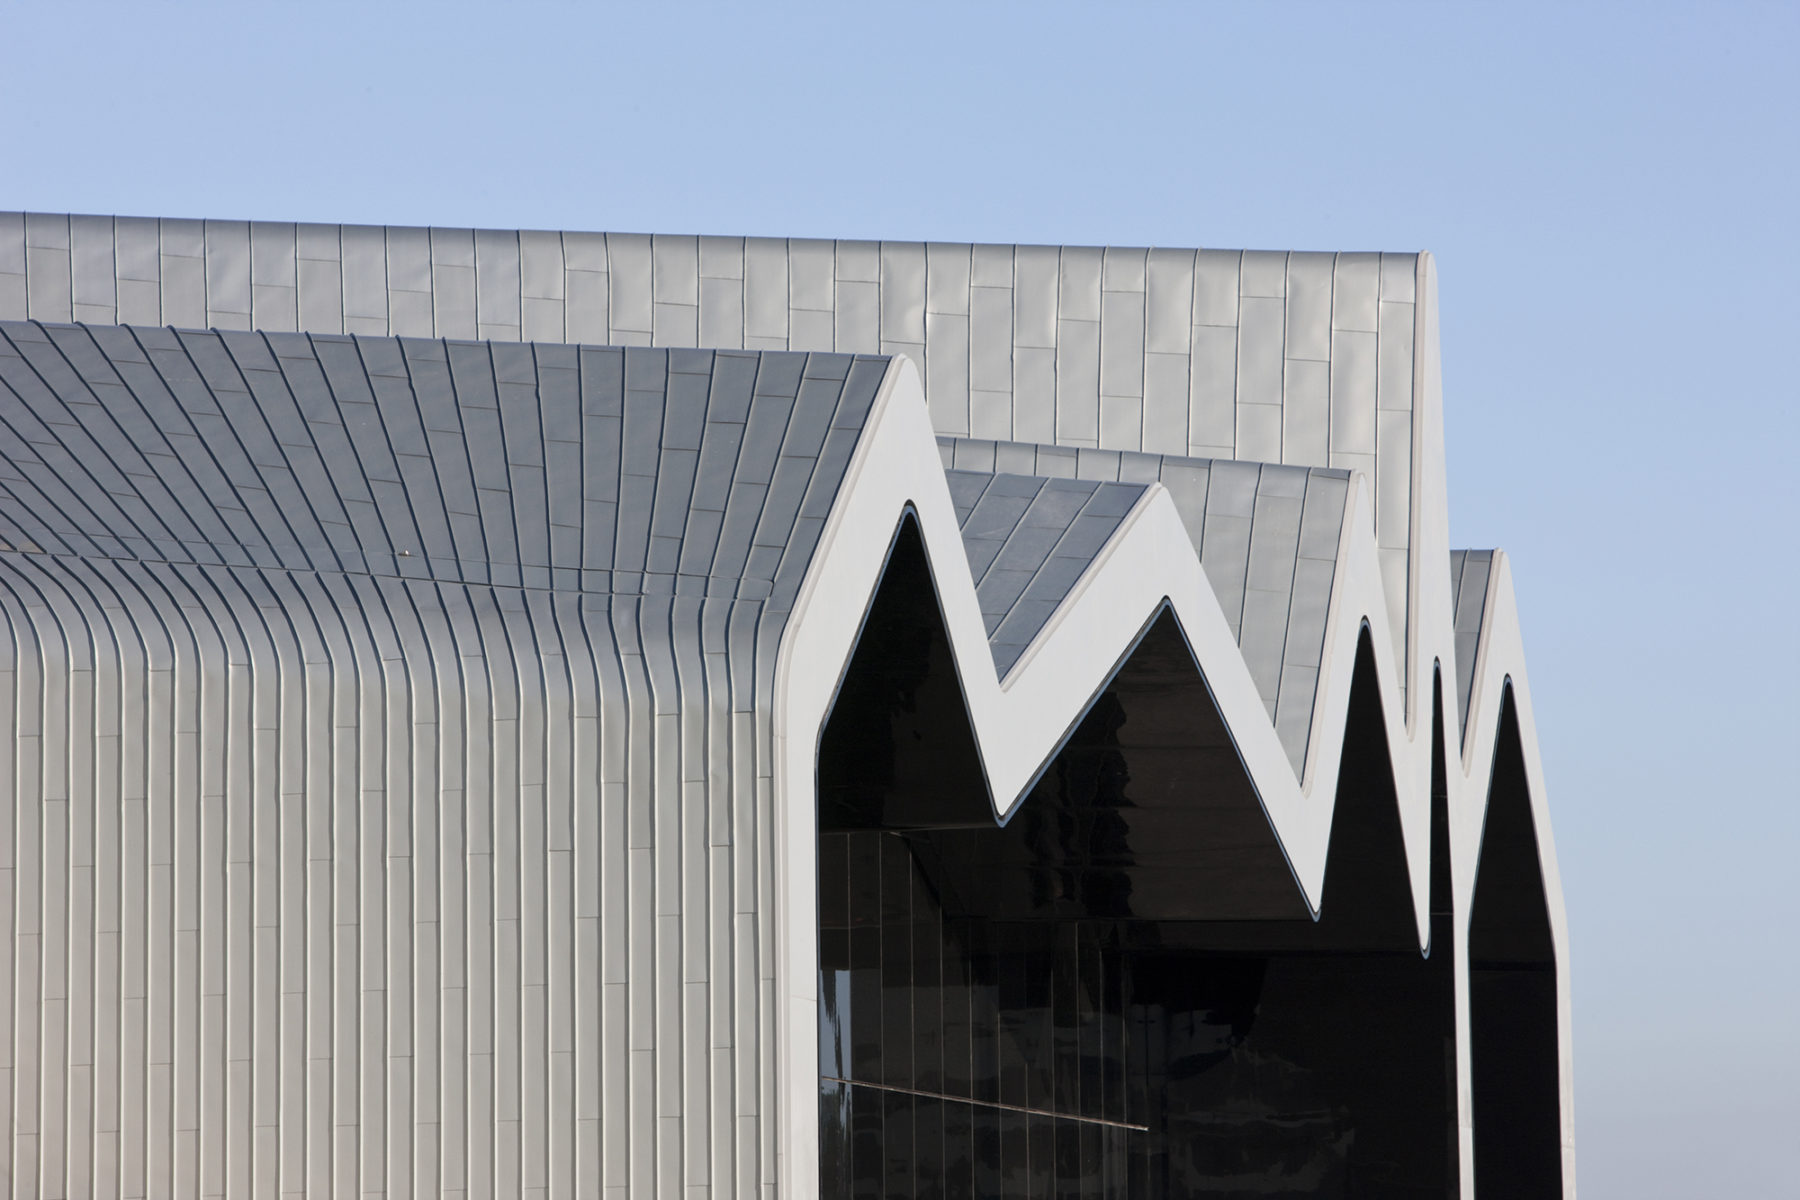 Exterior details | The Riverside Museum | by McAteer Photograph